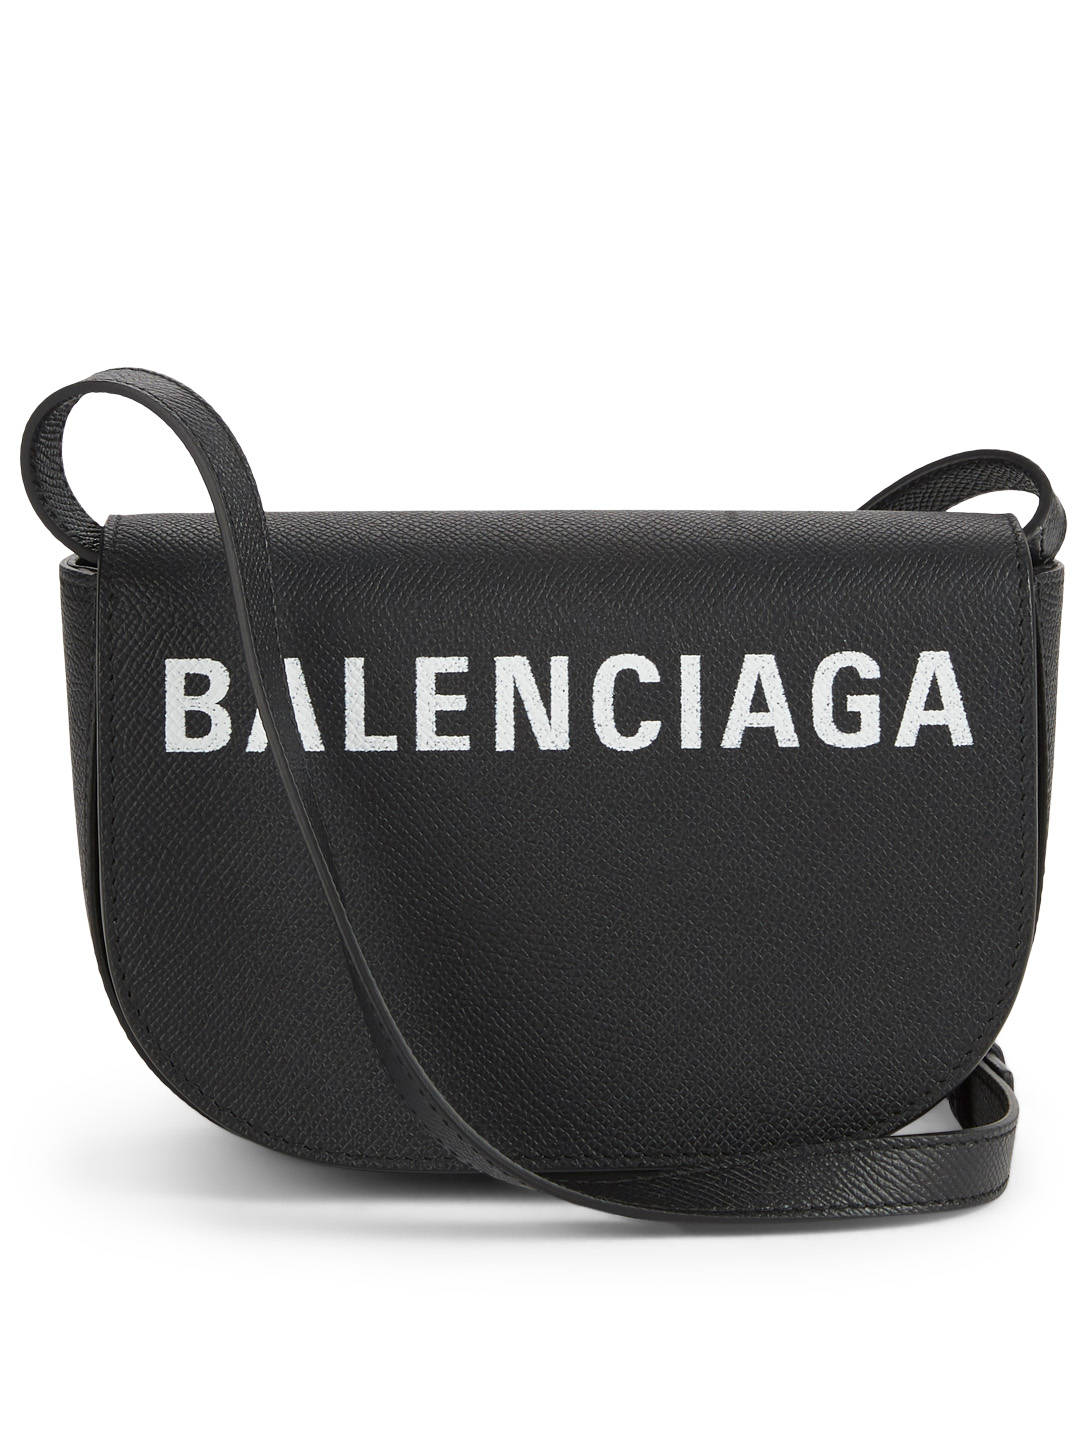 a3330bc0b8 BALENCIAGA Extra Small Ville Day Leather Crossbody Bag With Logo Women's  Black ...